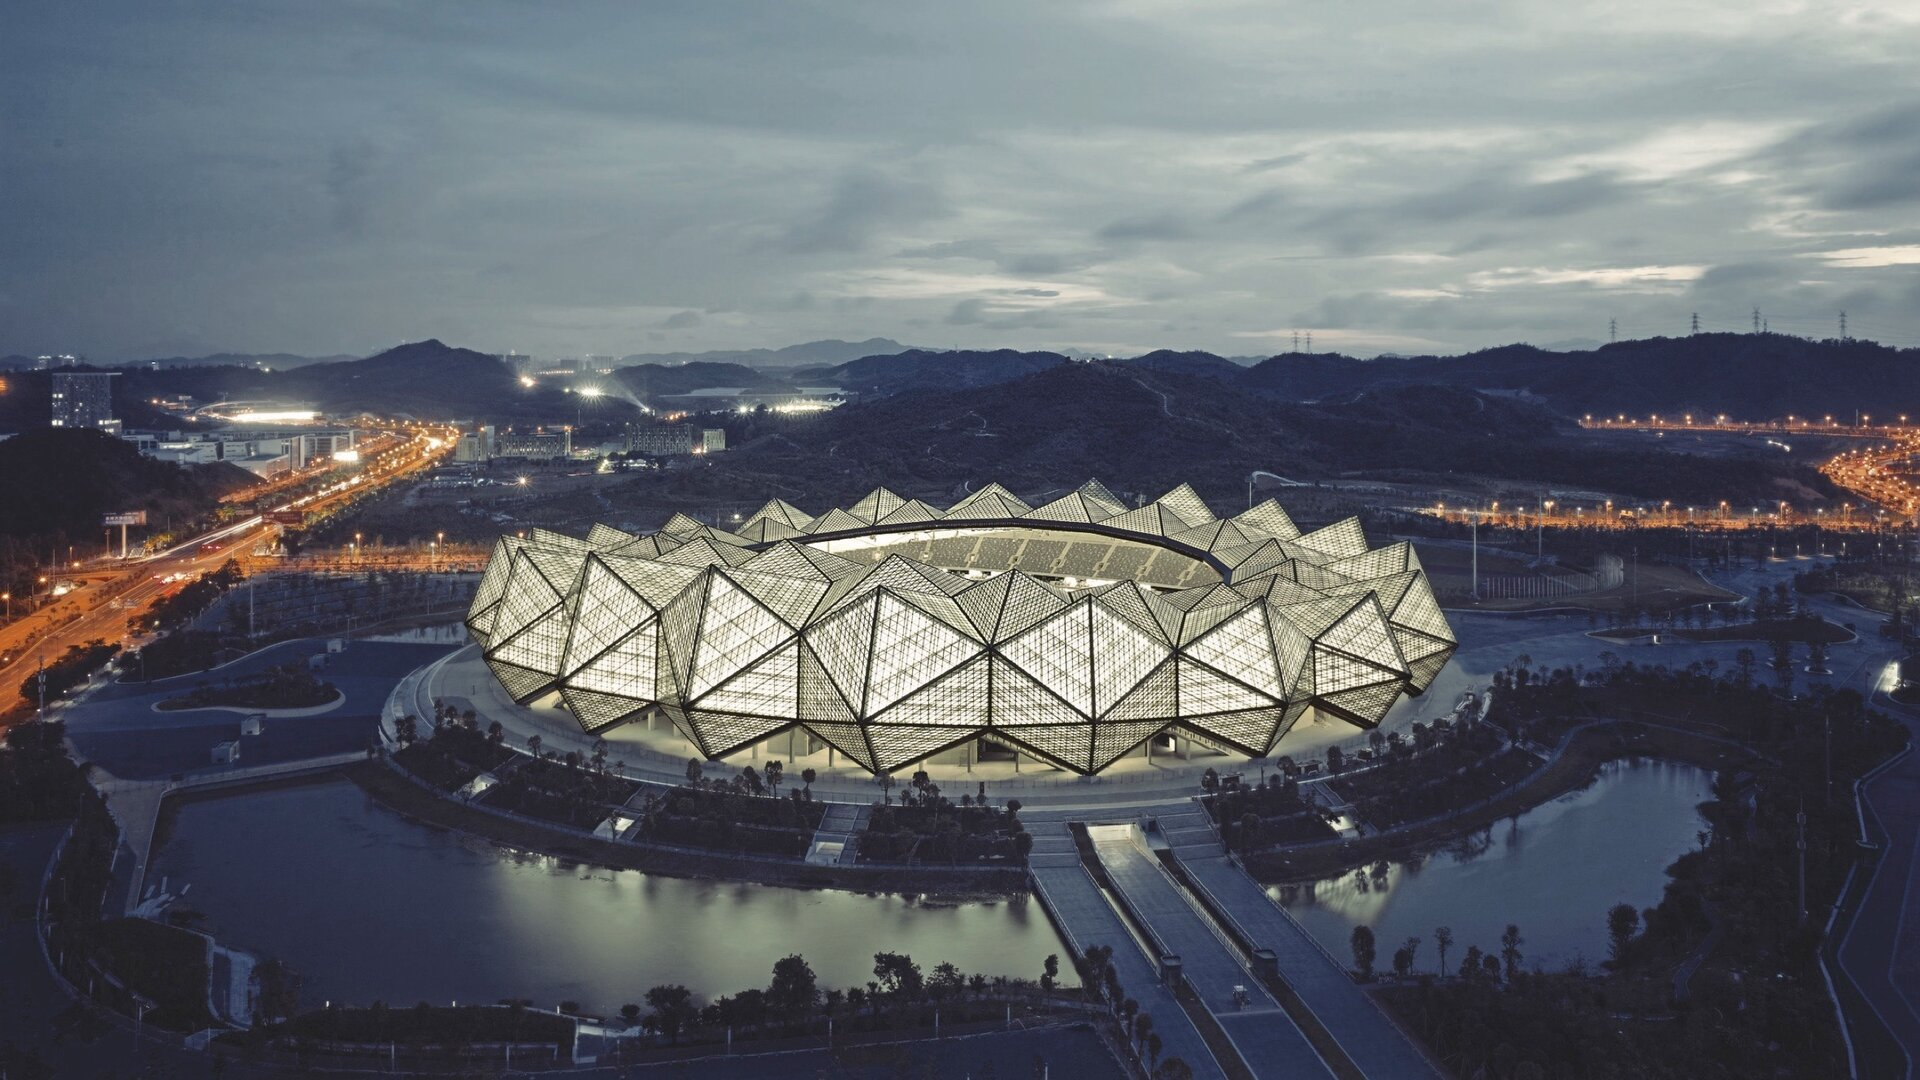 Universiade Sports Center, Shenzhen